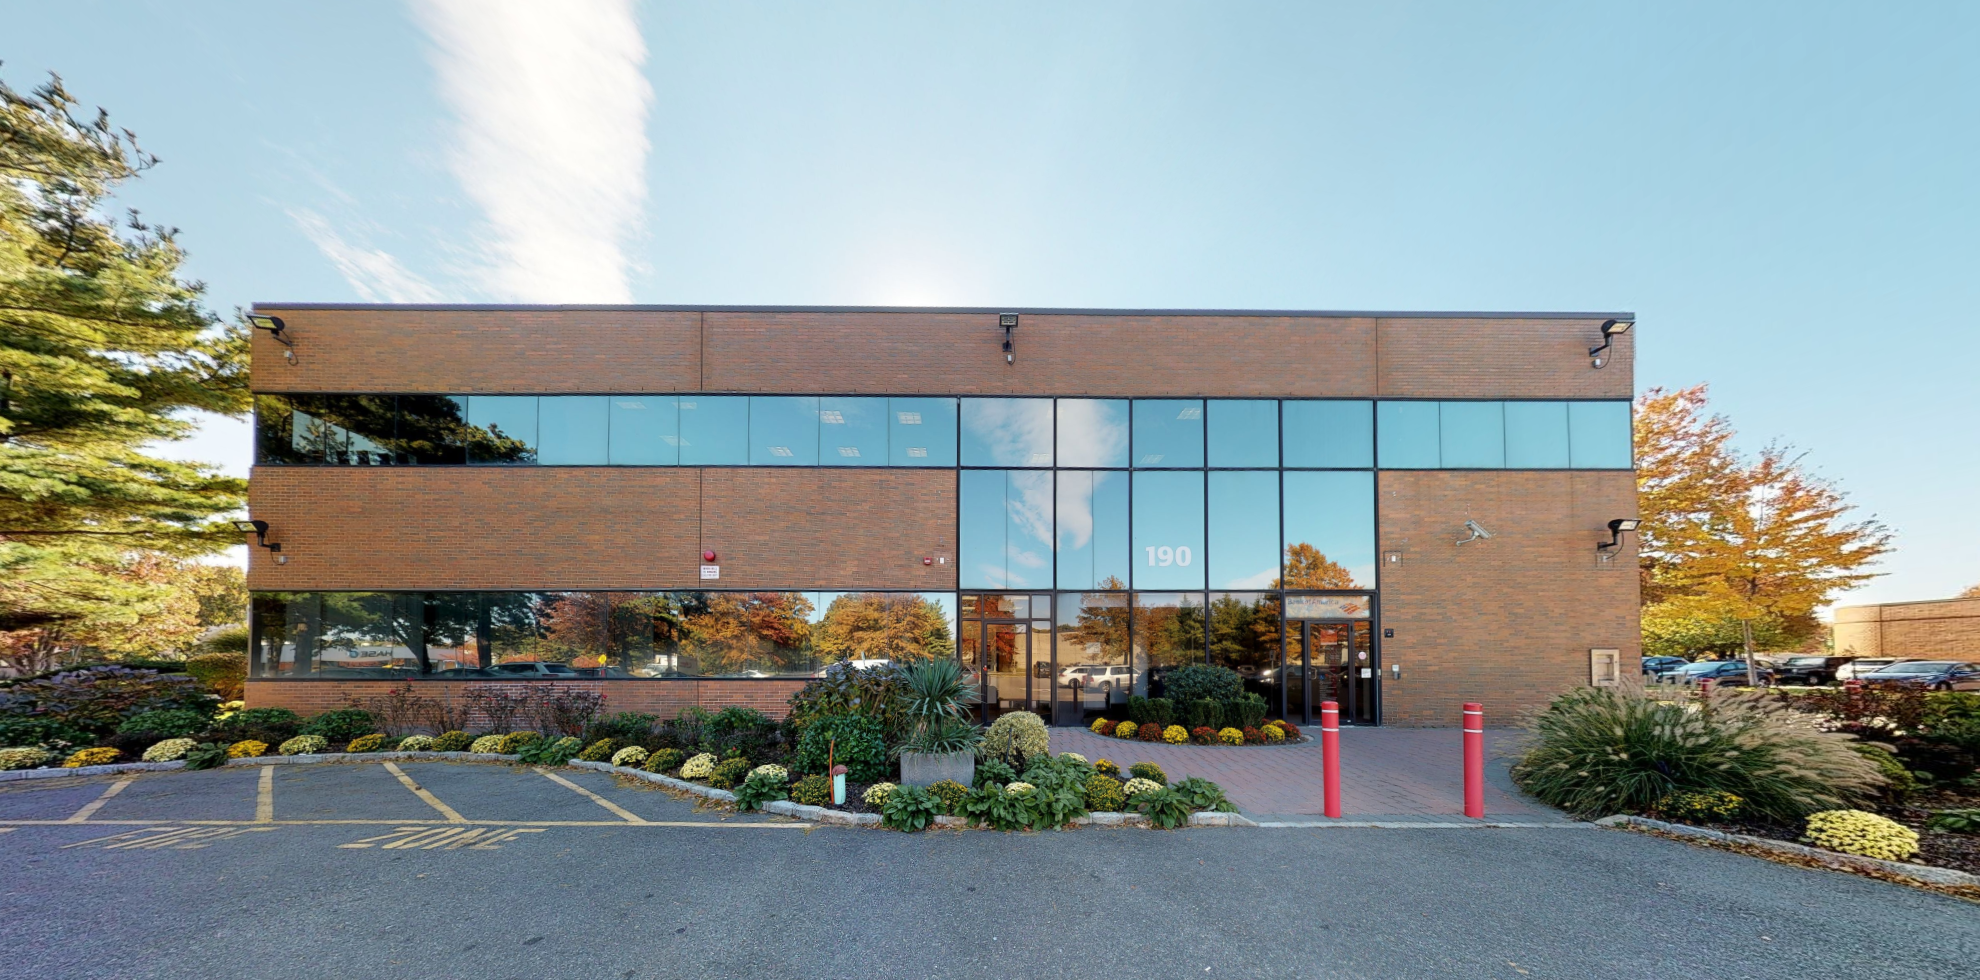 Bank of America financial center with drive-thru ATM | 190 Motor Pkwy STE 100, Hauppauge, NY 11788